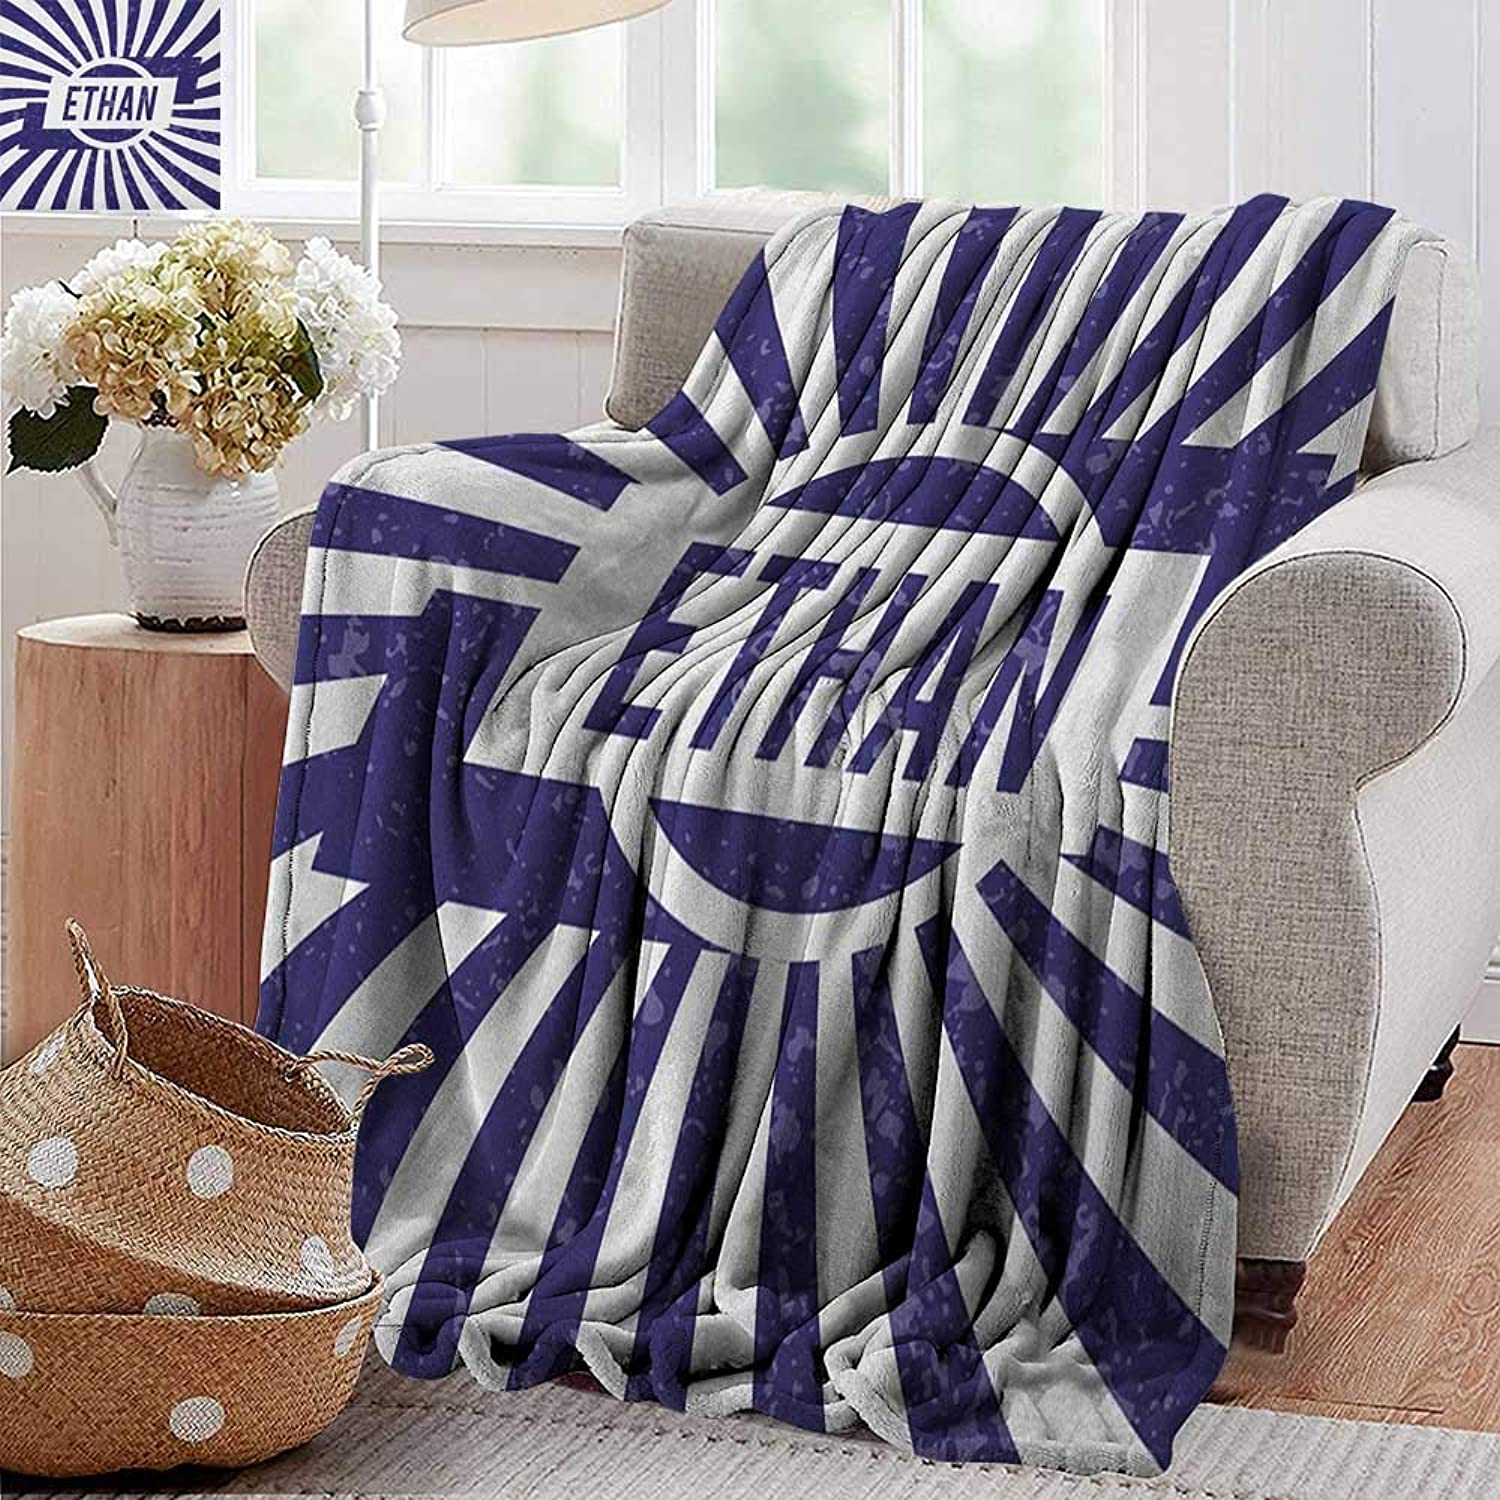 XavieraDoherty Bed Blanket,Ethan,Grunge Letters in Navy bluee in a Circle with Wavy Stripes Boys Birthday, Navy bluee and White,for Bed & Couch Sofa Easy Care 35 x60